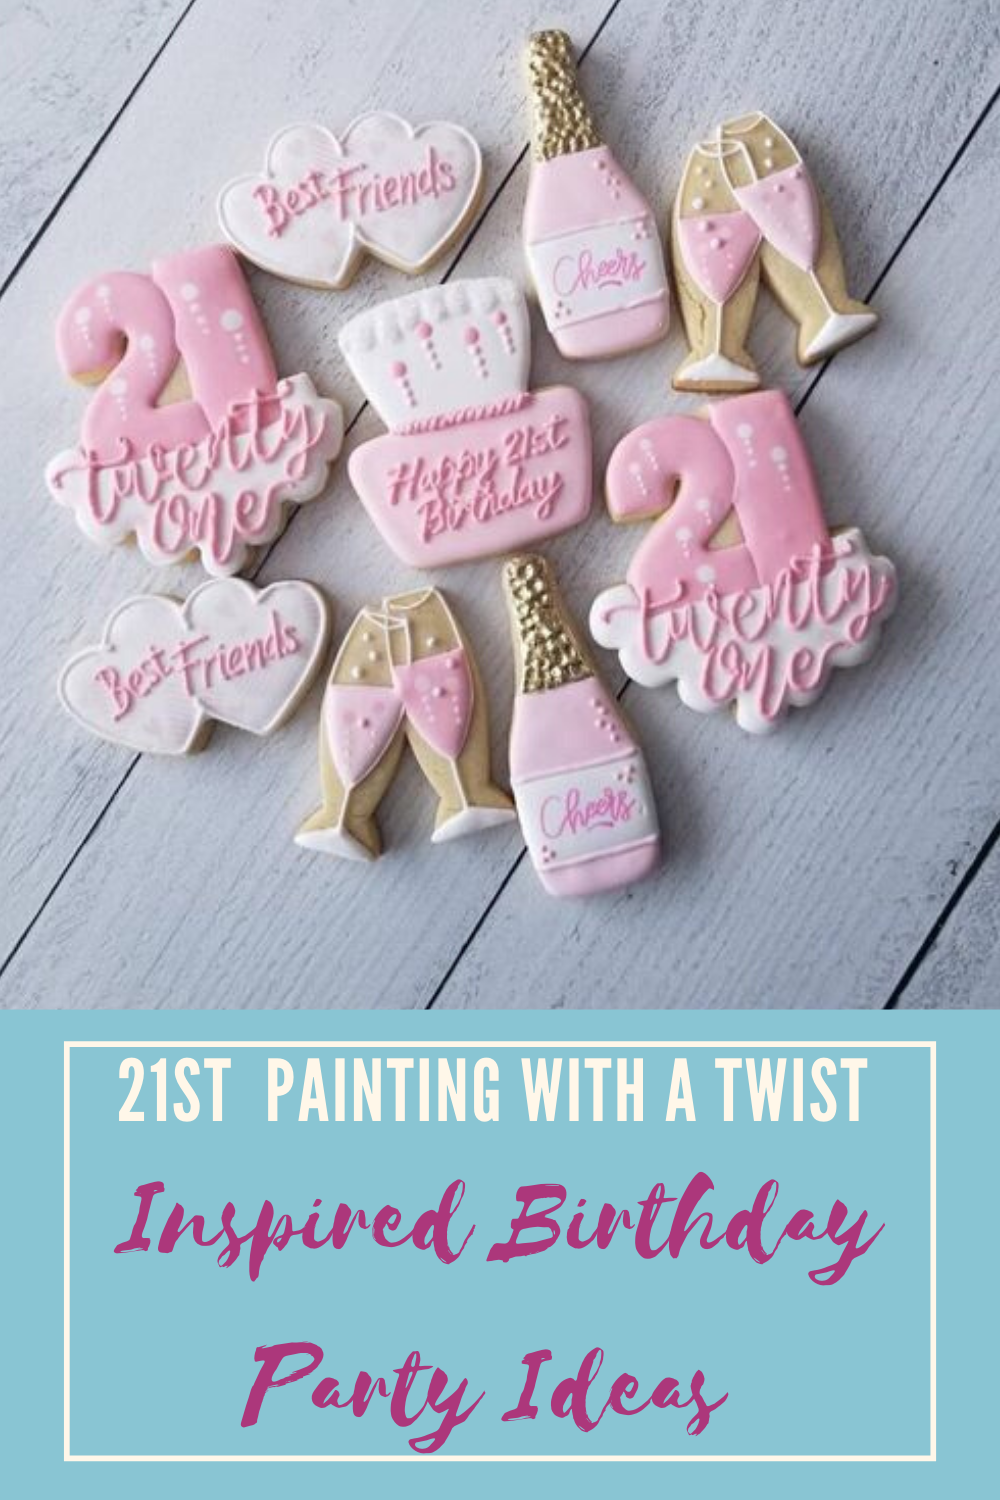 21st Painting With A Twist Inspired Birthday Party Lyfetymes Party